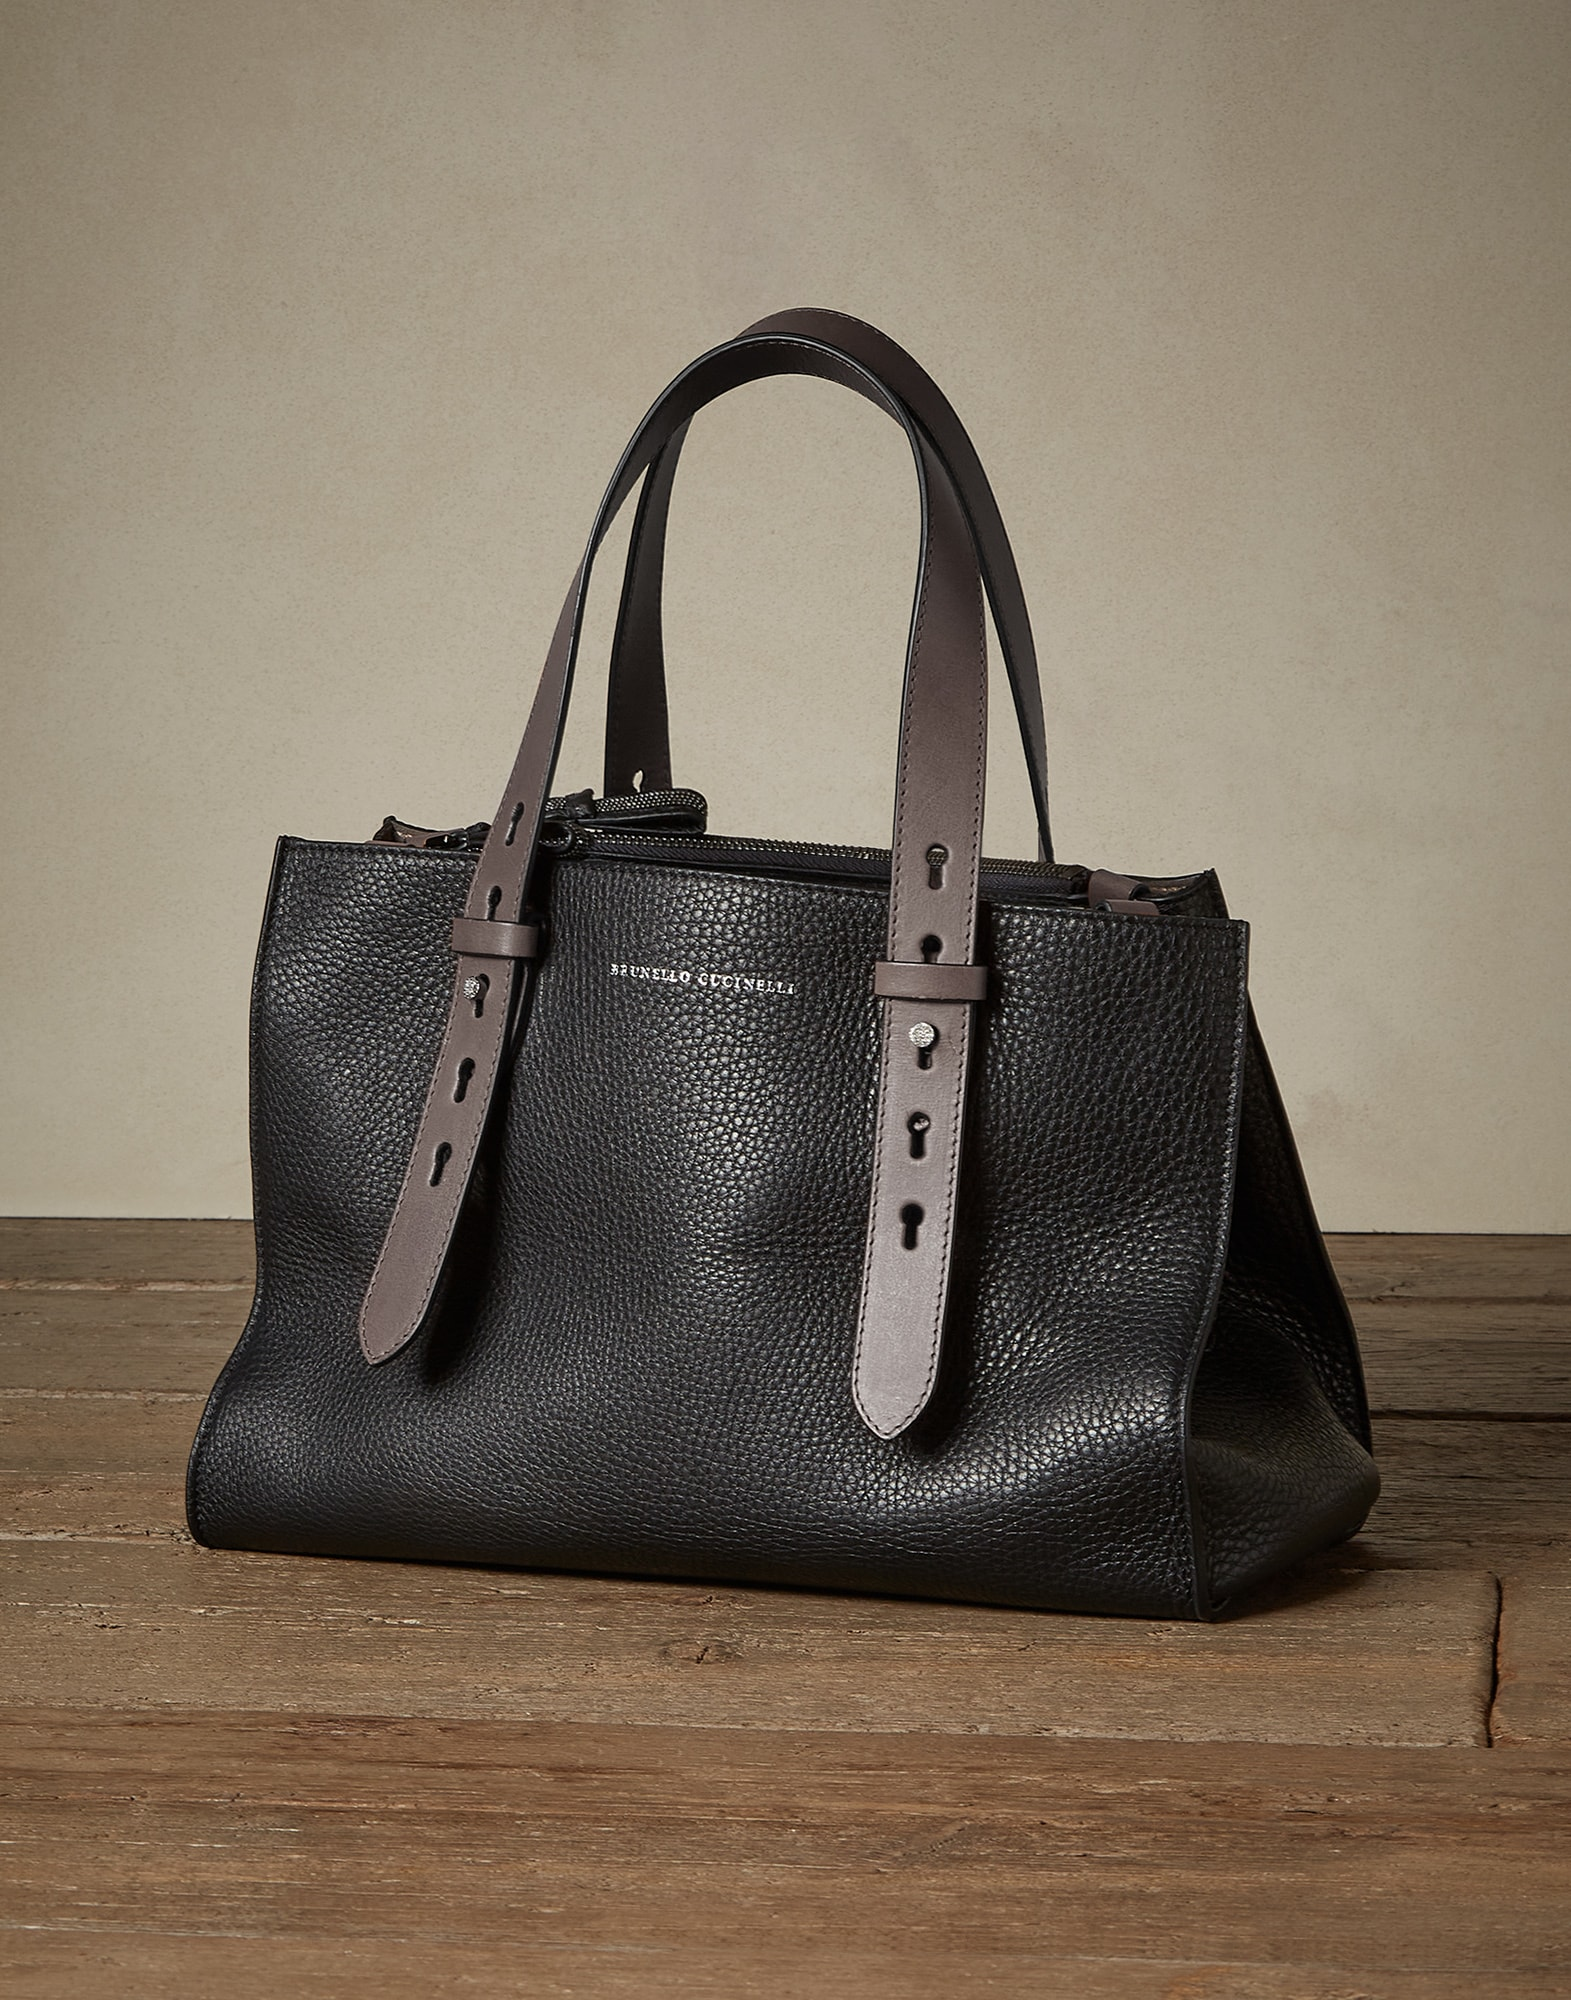 Shopper Bag Black Woman 0 - Brunello Cucinelli